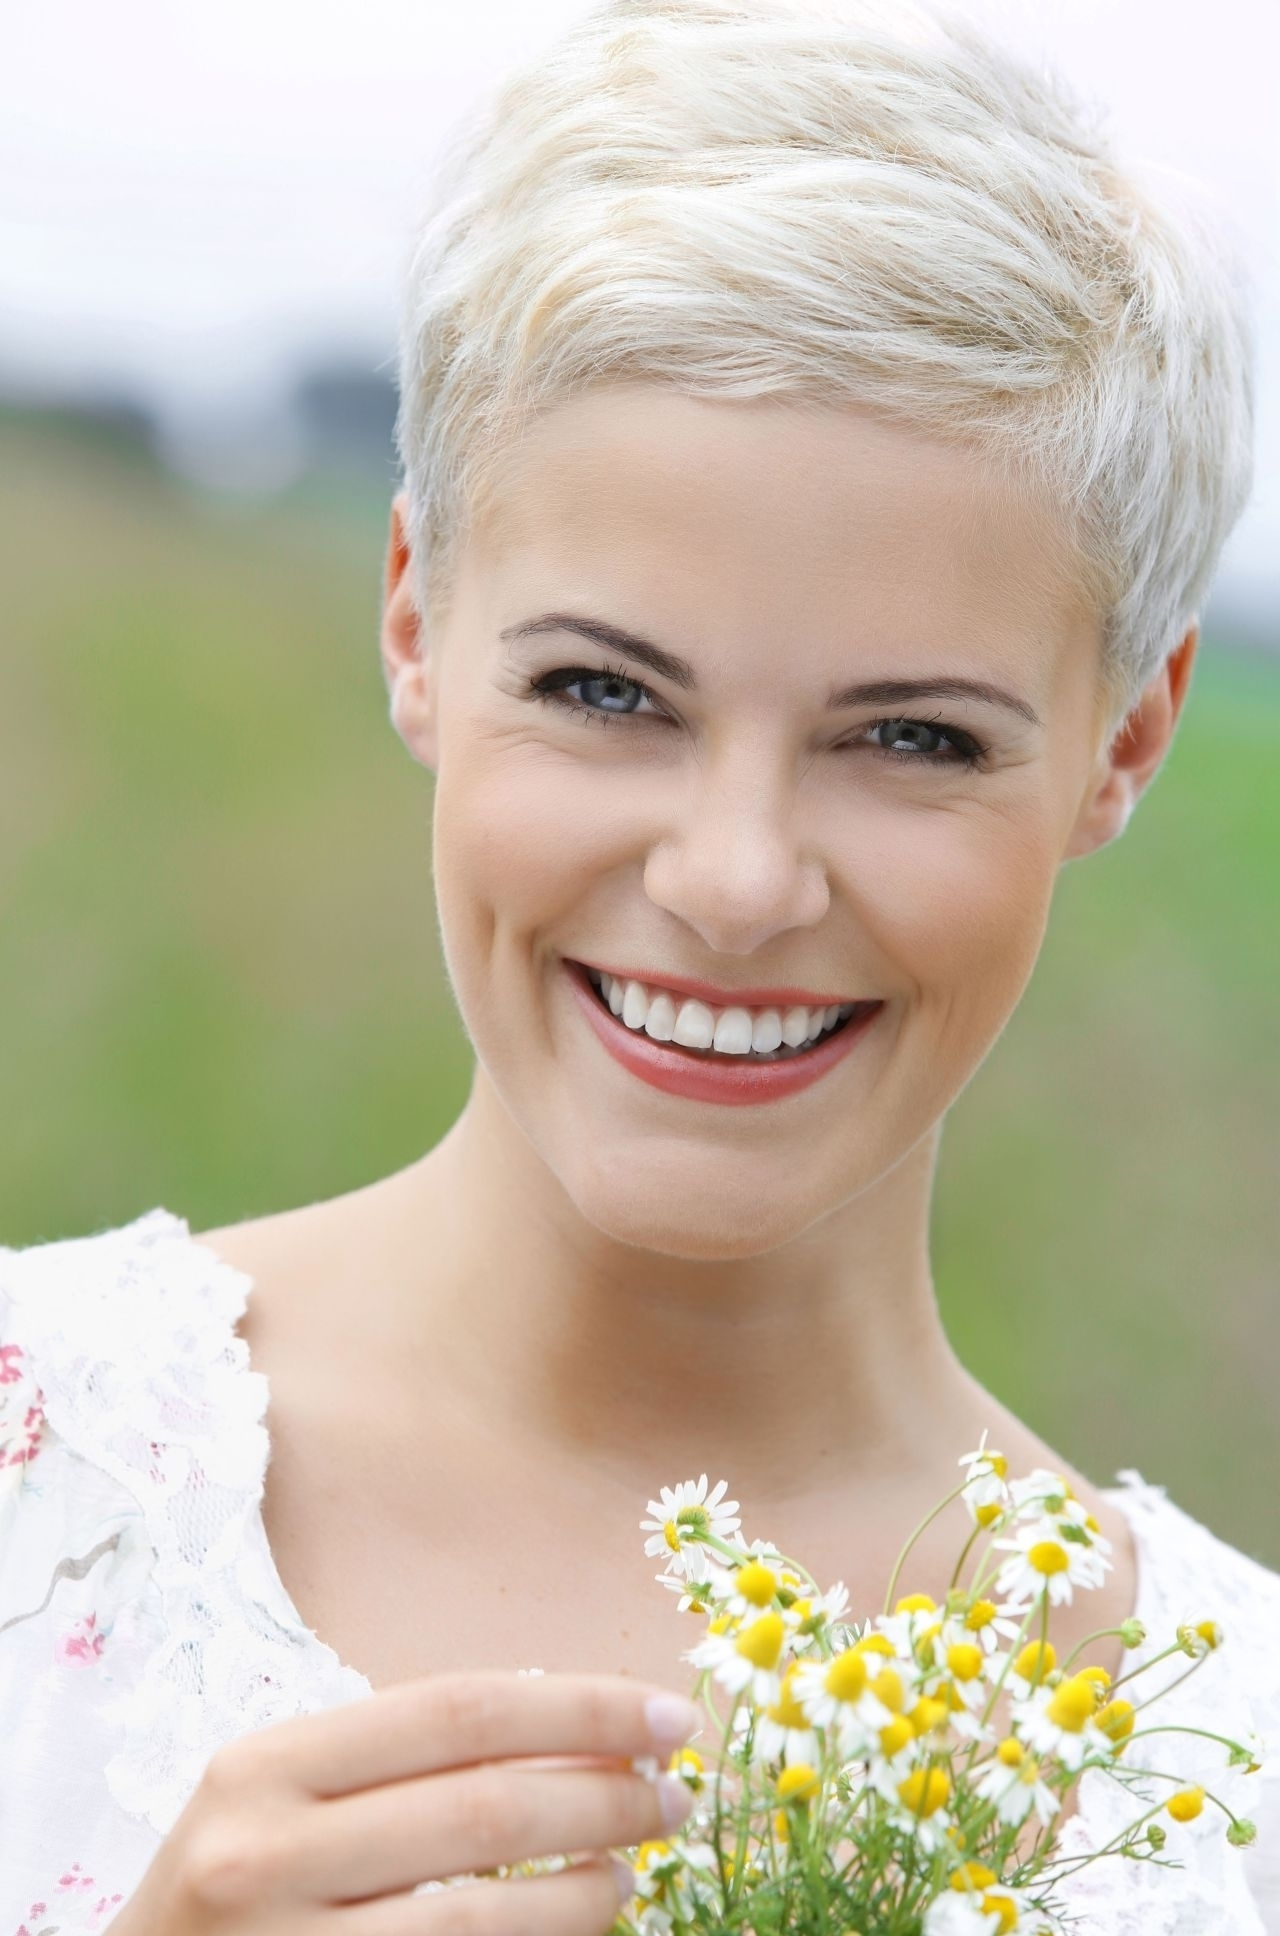 Short Shaggy Pixie Hairstyles Intended For Latest Extremely Short Pixie Hairstyles (View 9 of 15)